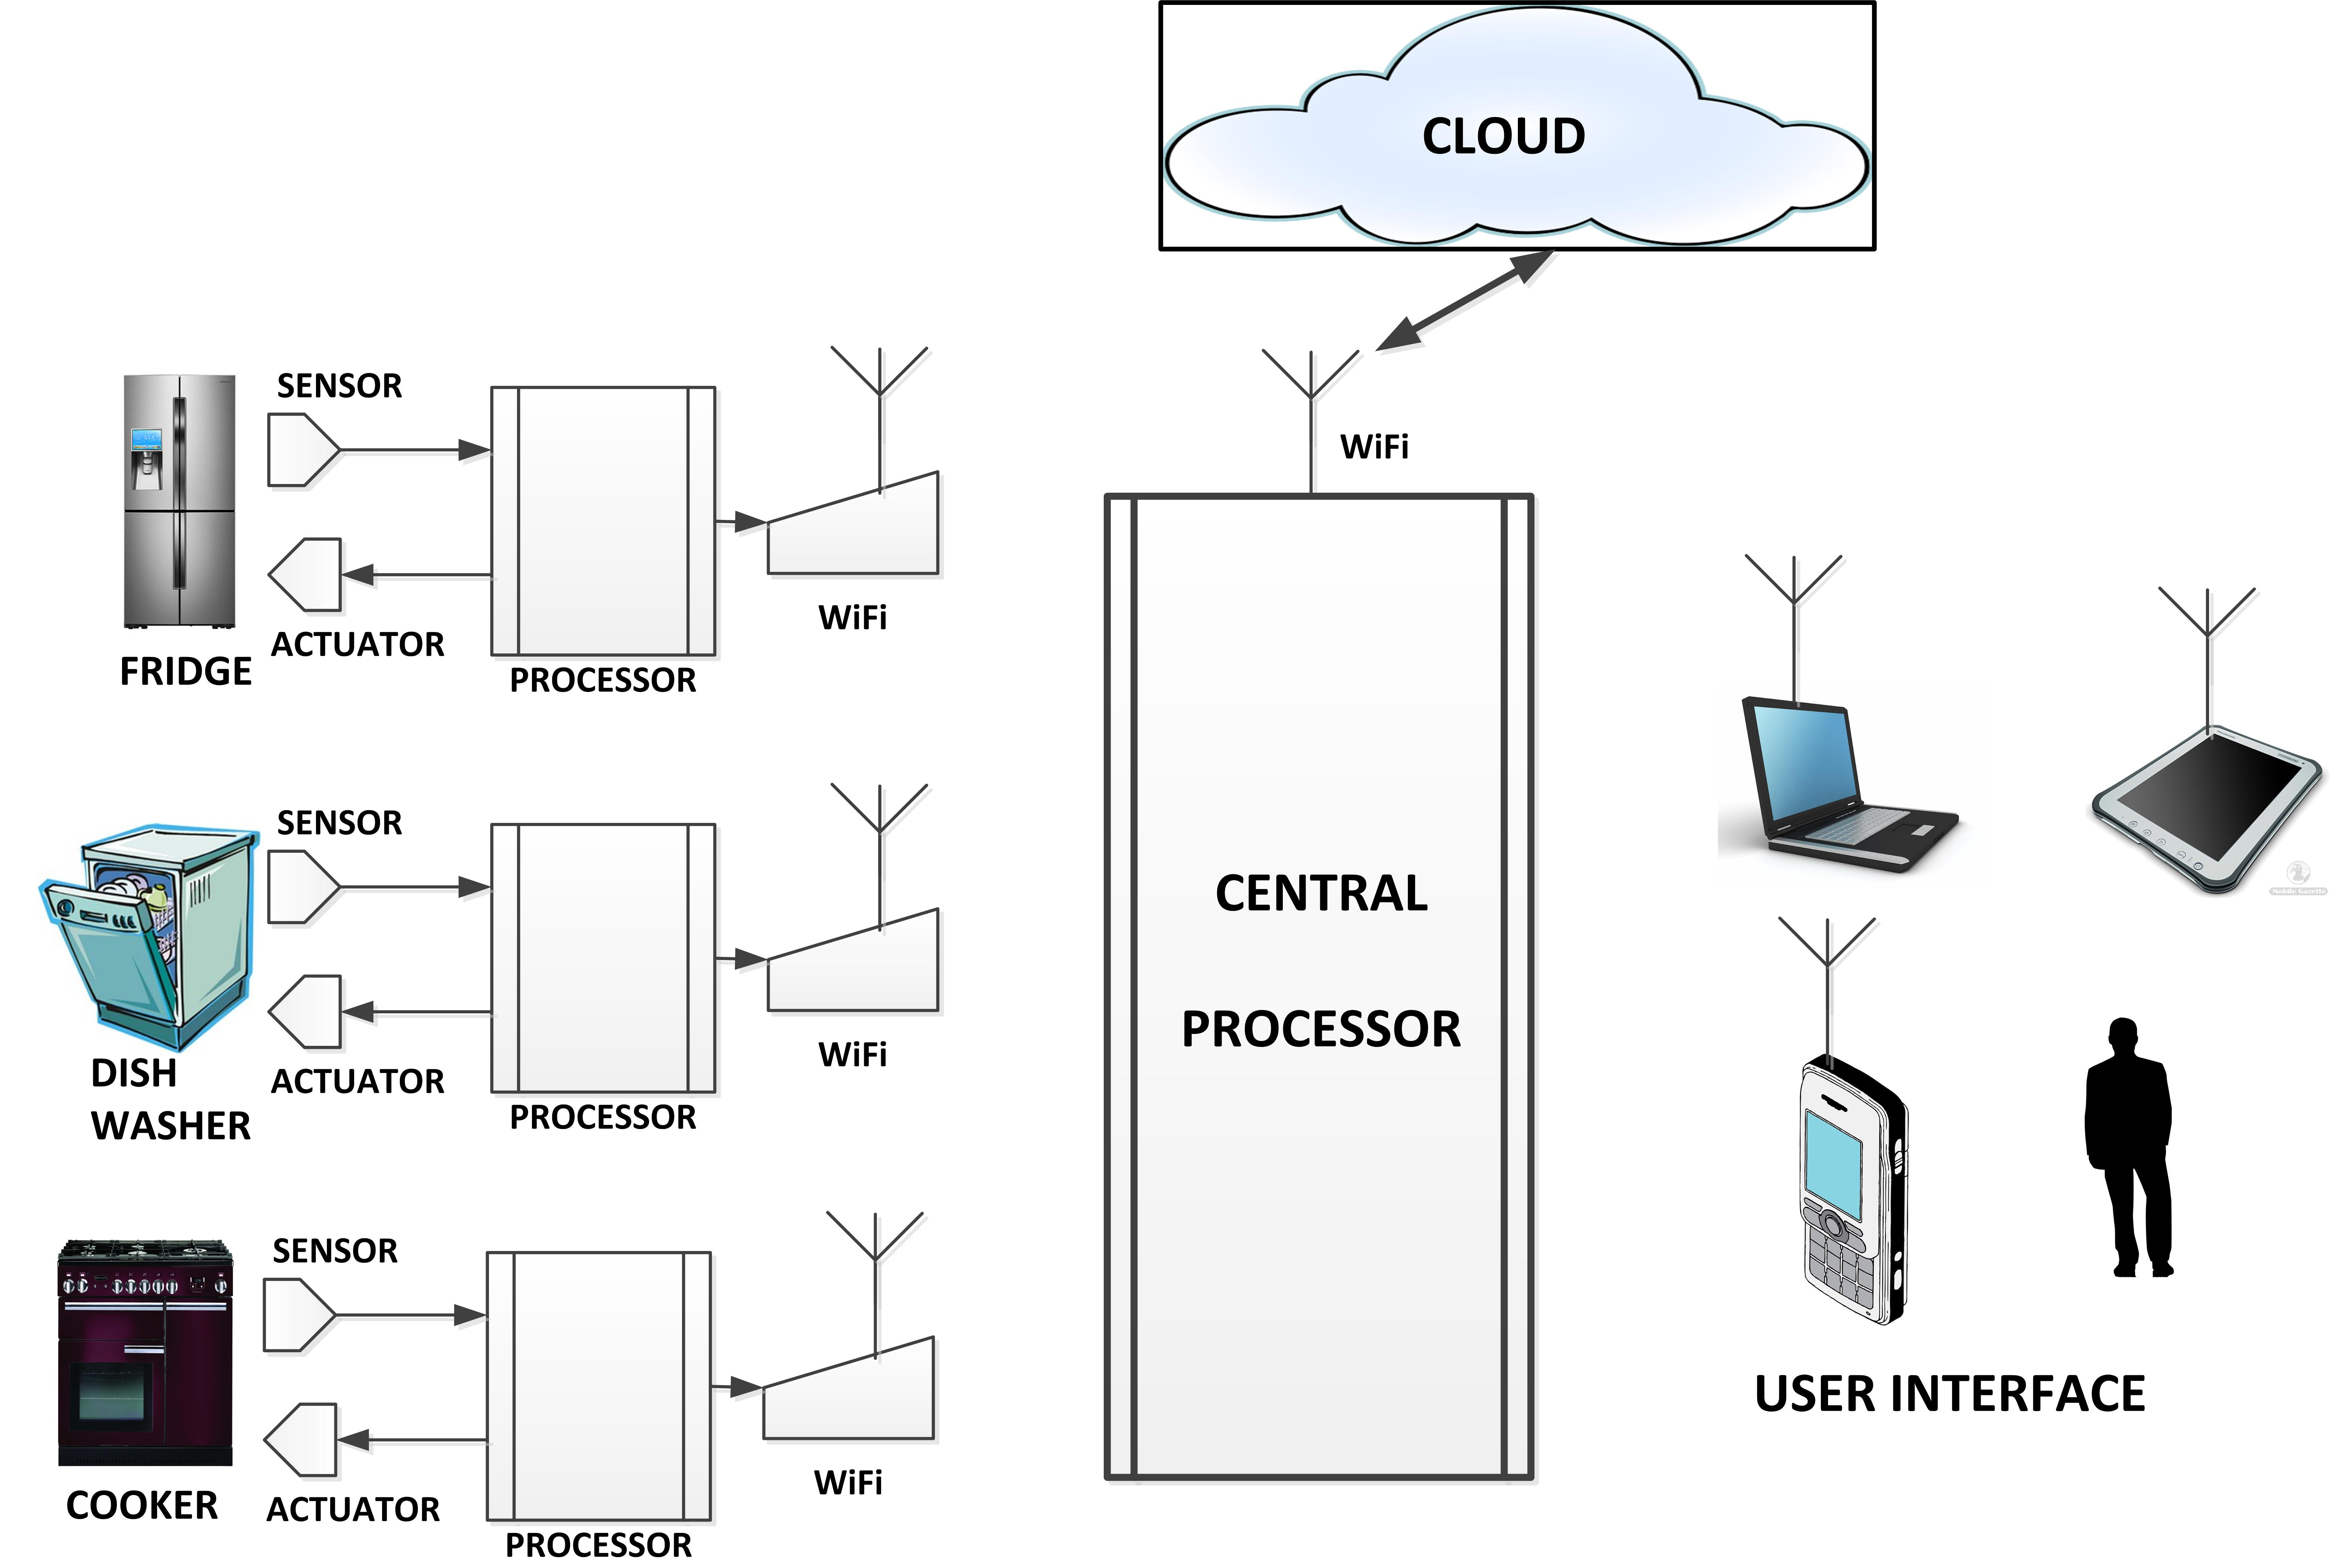 Low Power Wireless For IoT And The Case For Going Nonstandard - Home wireless network design